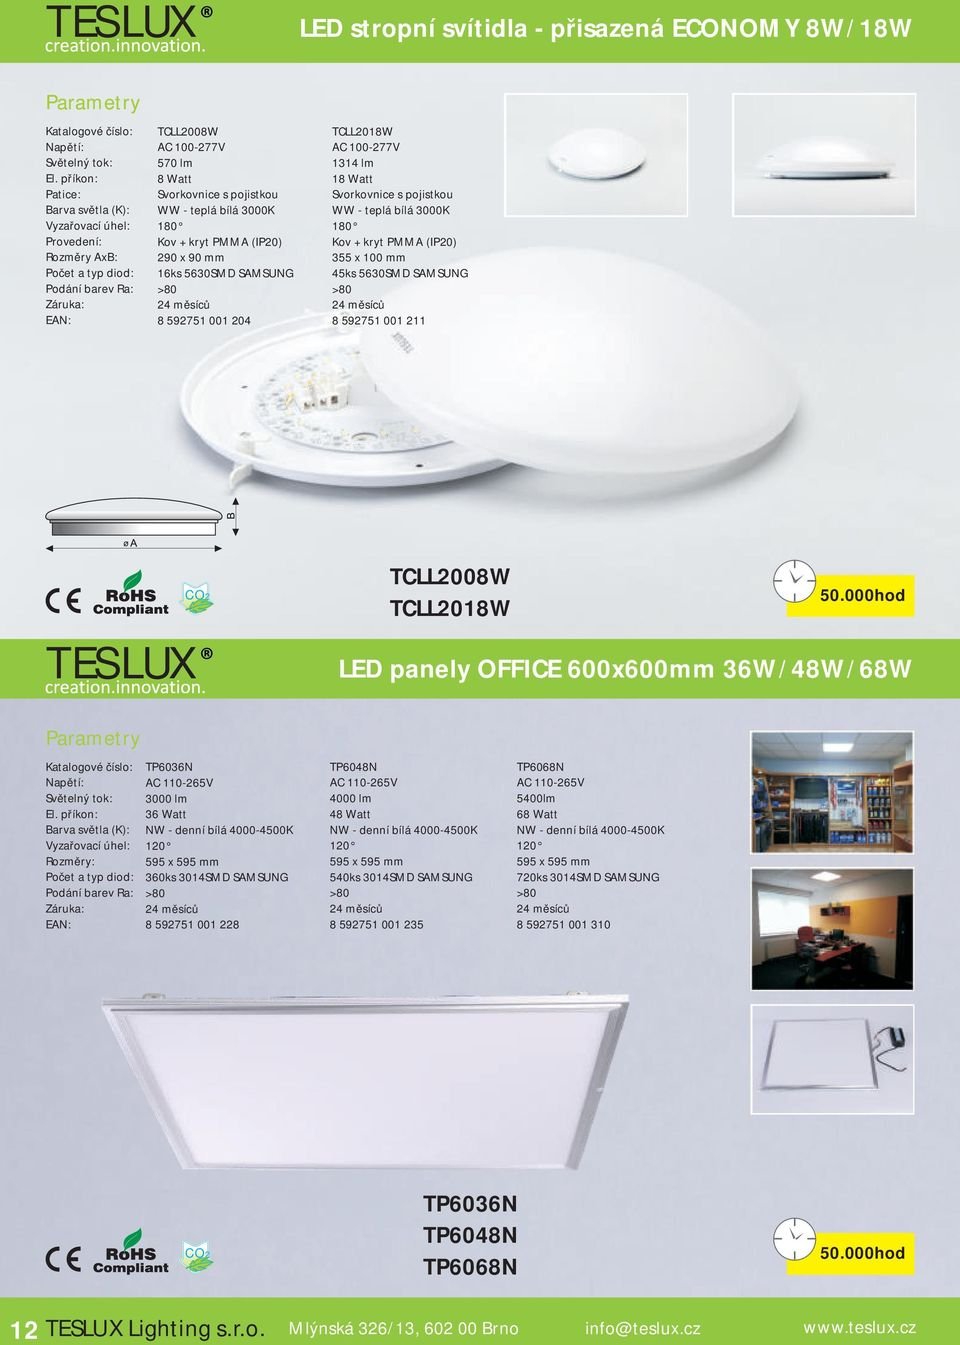 211 TCLL2008W TCLL2018W LED panely OFFICE 0x0mm 36W/48W/68W TP36N AC 110-265V 3000 lm 36 Watt 595 x 595 mm 3ks 3014SMD SAMSUNG 8 592751 001 228 TP48N AC 110-265V 4000 lm 48 Watt 595 x 595 mm